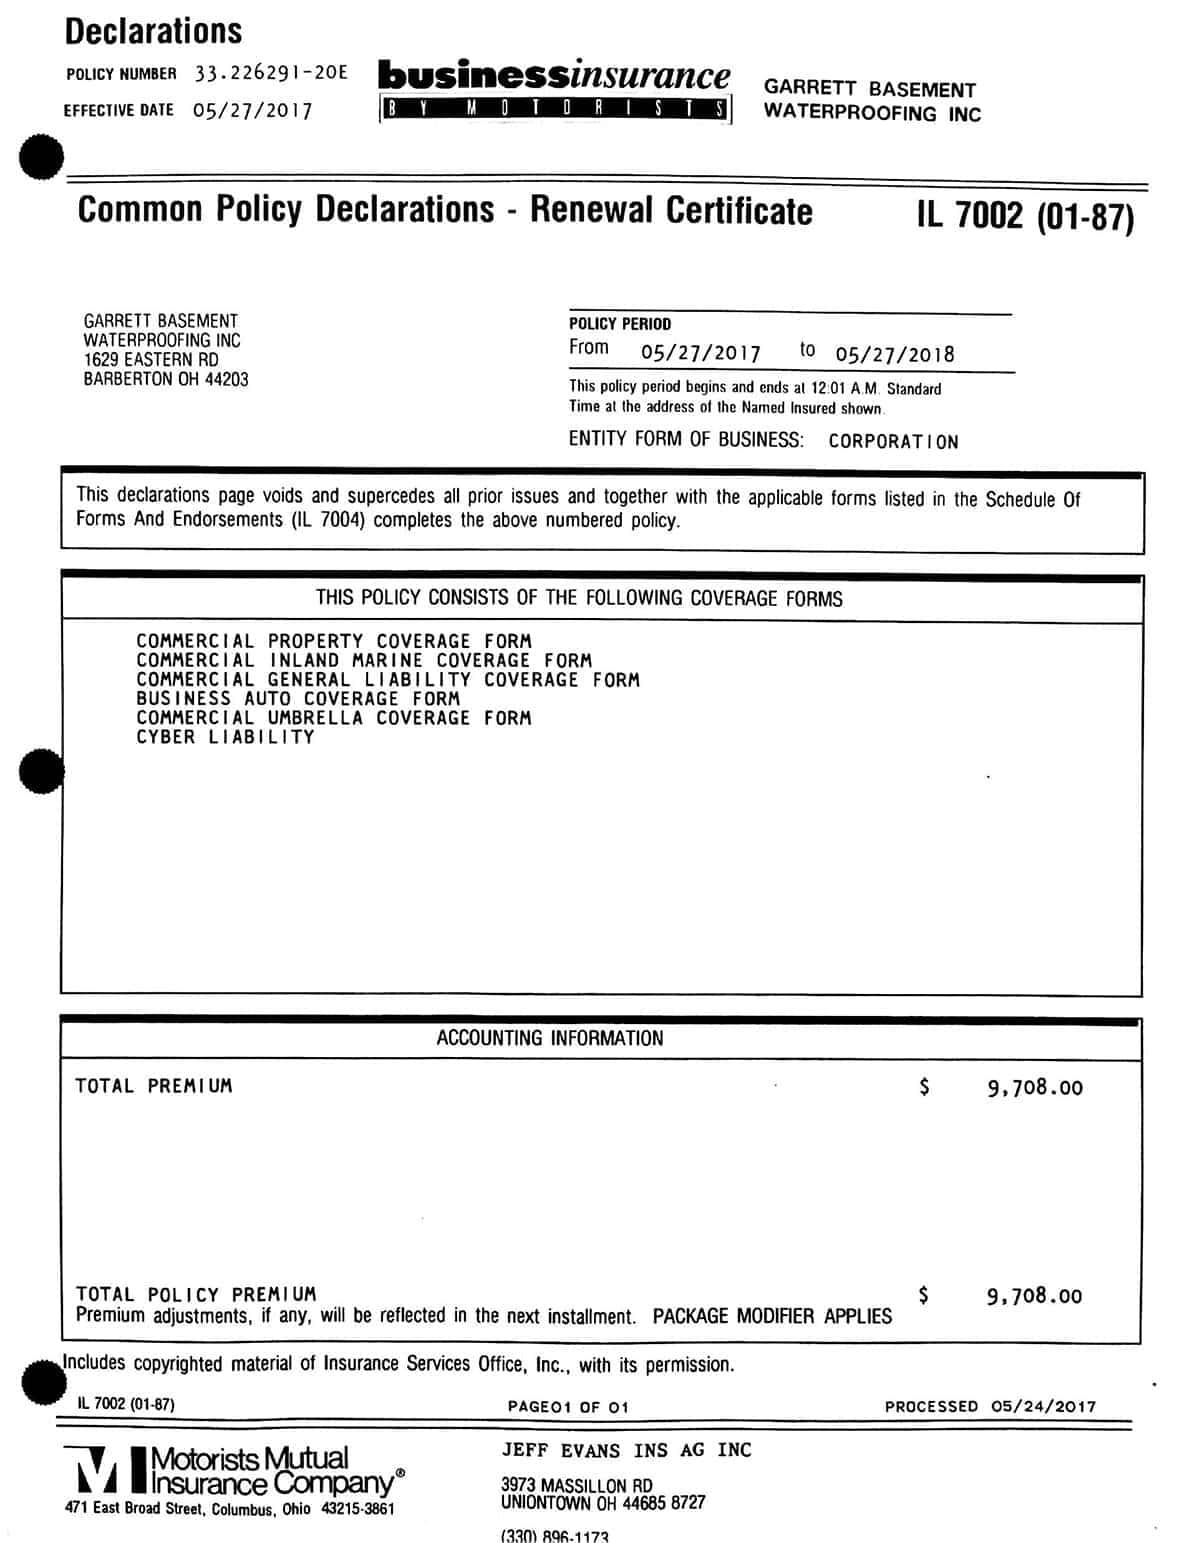 Common Policy Declarations- Renewal Certificate